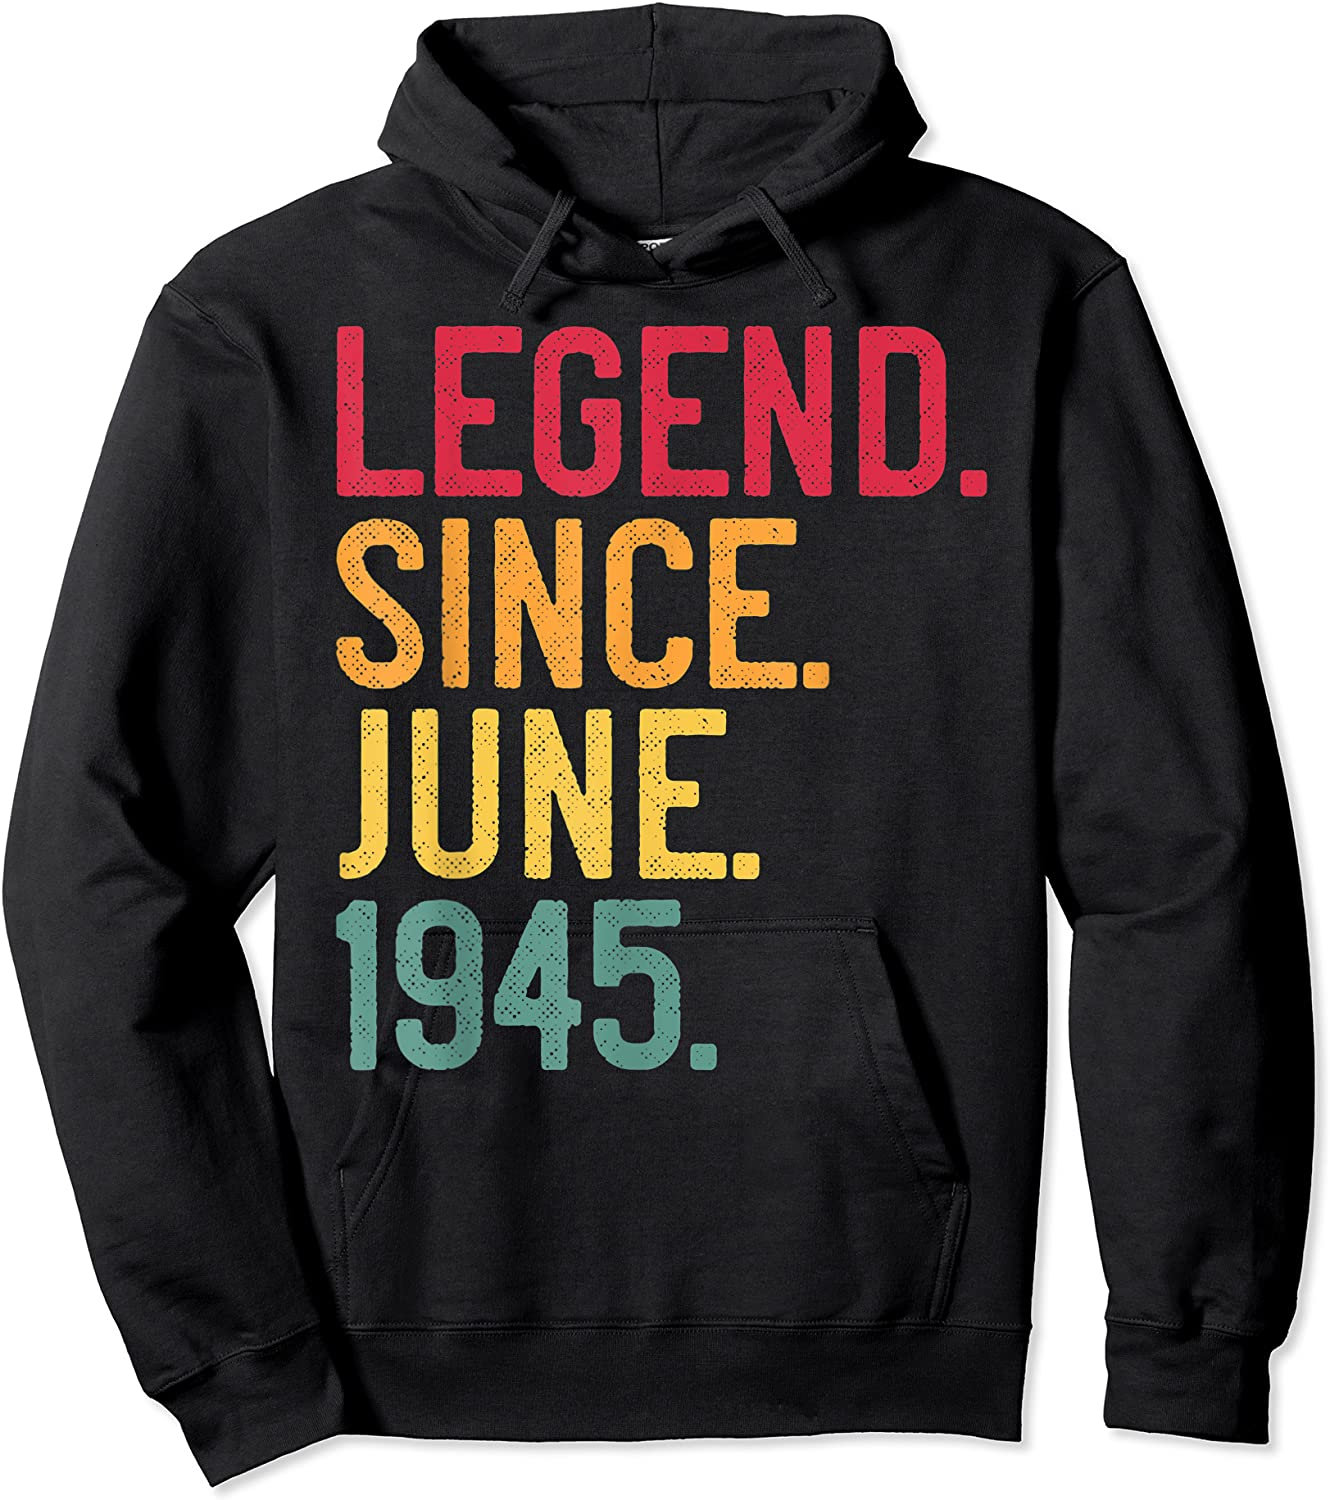 Legend Since June 1945 76th Birthday 76 Years Old Vintage T-shirt Unisex Pullover Hoodie